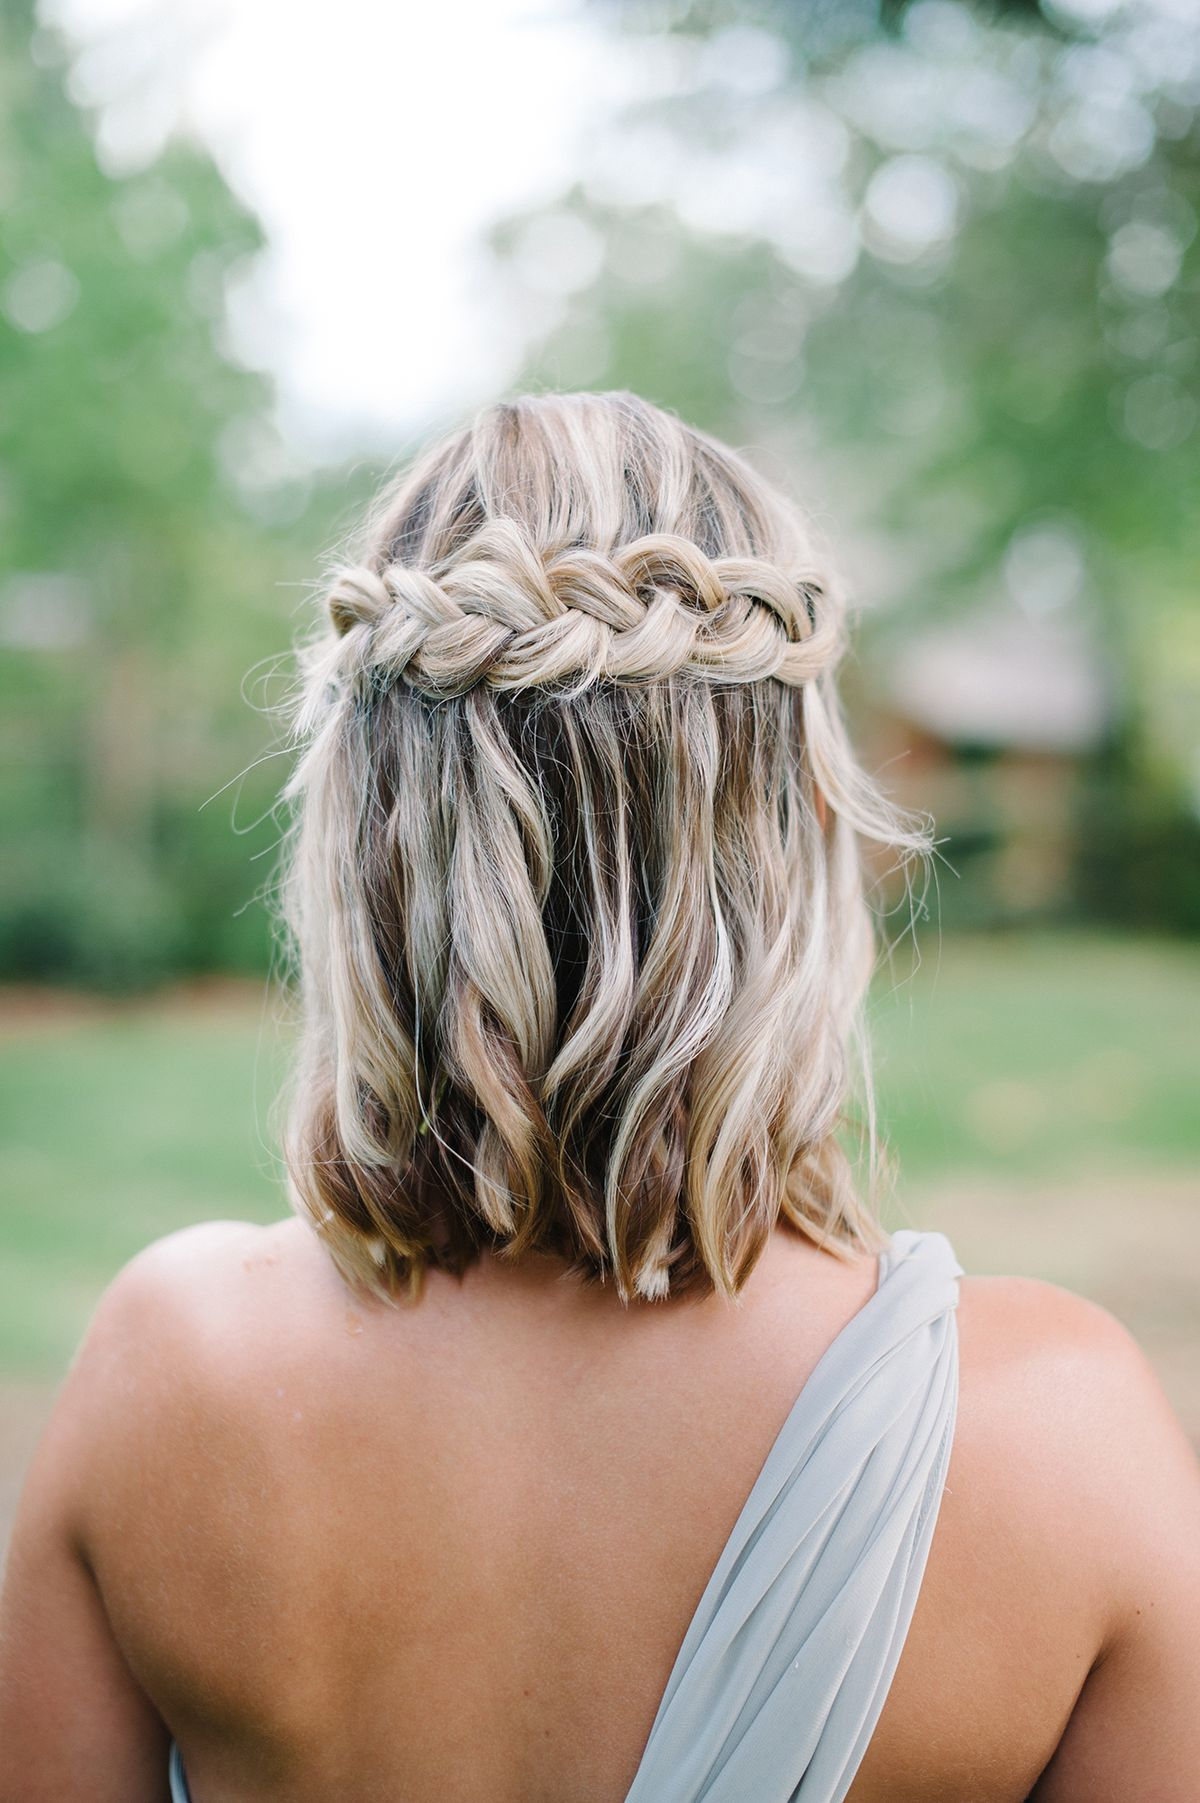 simple wedding hairstyles best photos | hairstyles